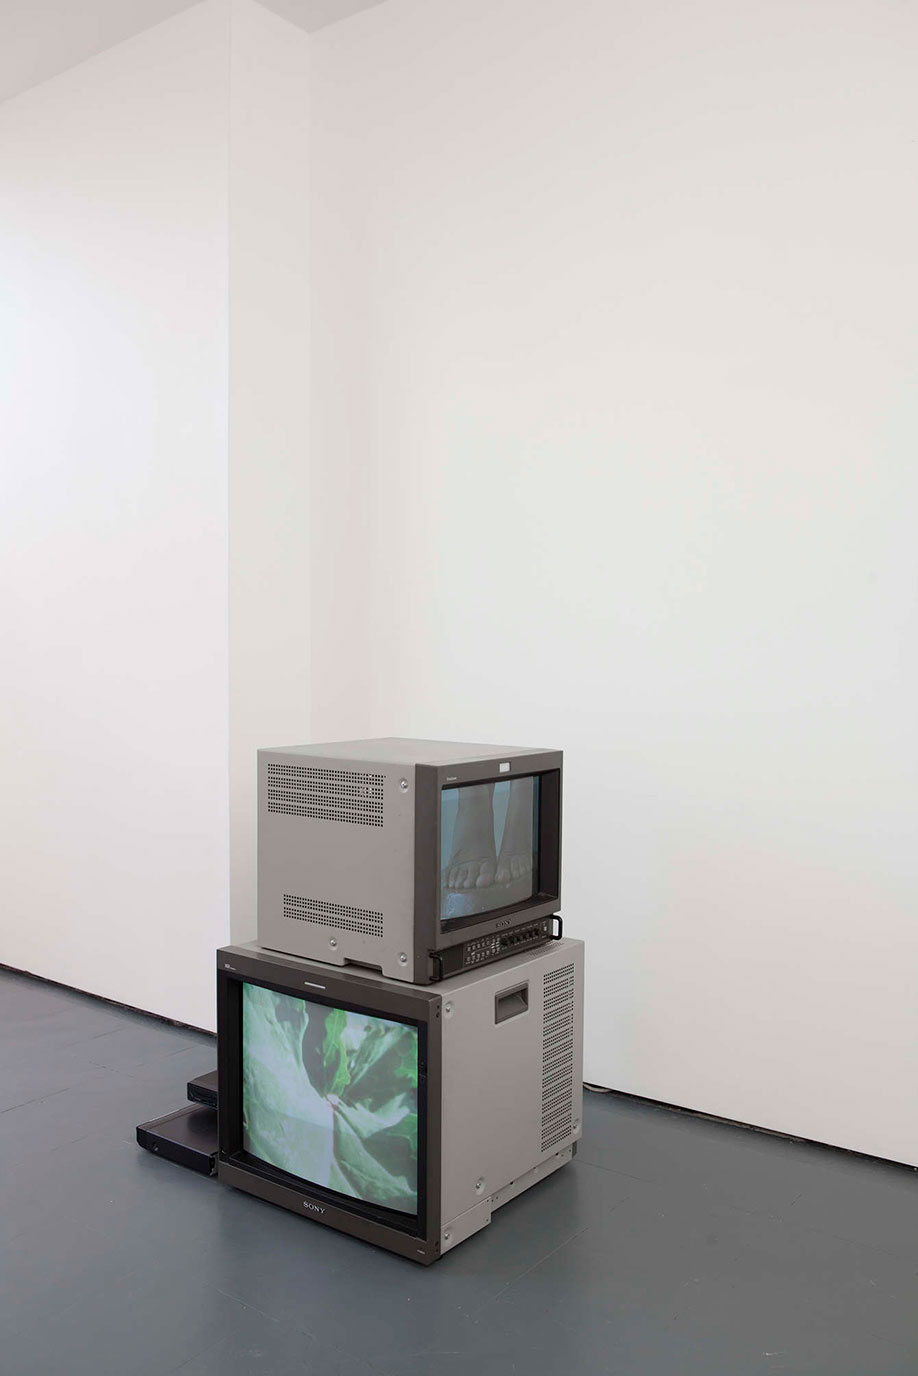 <b>Title:&nbsp;</b>Hold Me Tight And Let Me Go<br /><b>Year:&nbsp;</b>2013<br /><b>Medium:&nbsp;</b>Two channel video and box monitors<br /><b>Size:&nbsp;</b>Dimensions variable